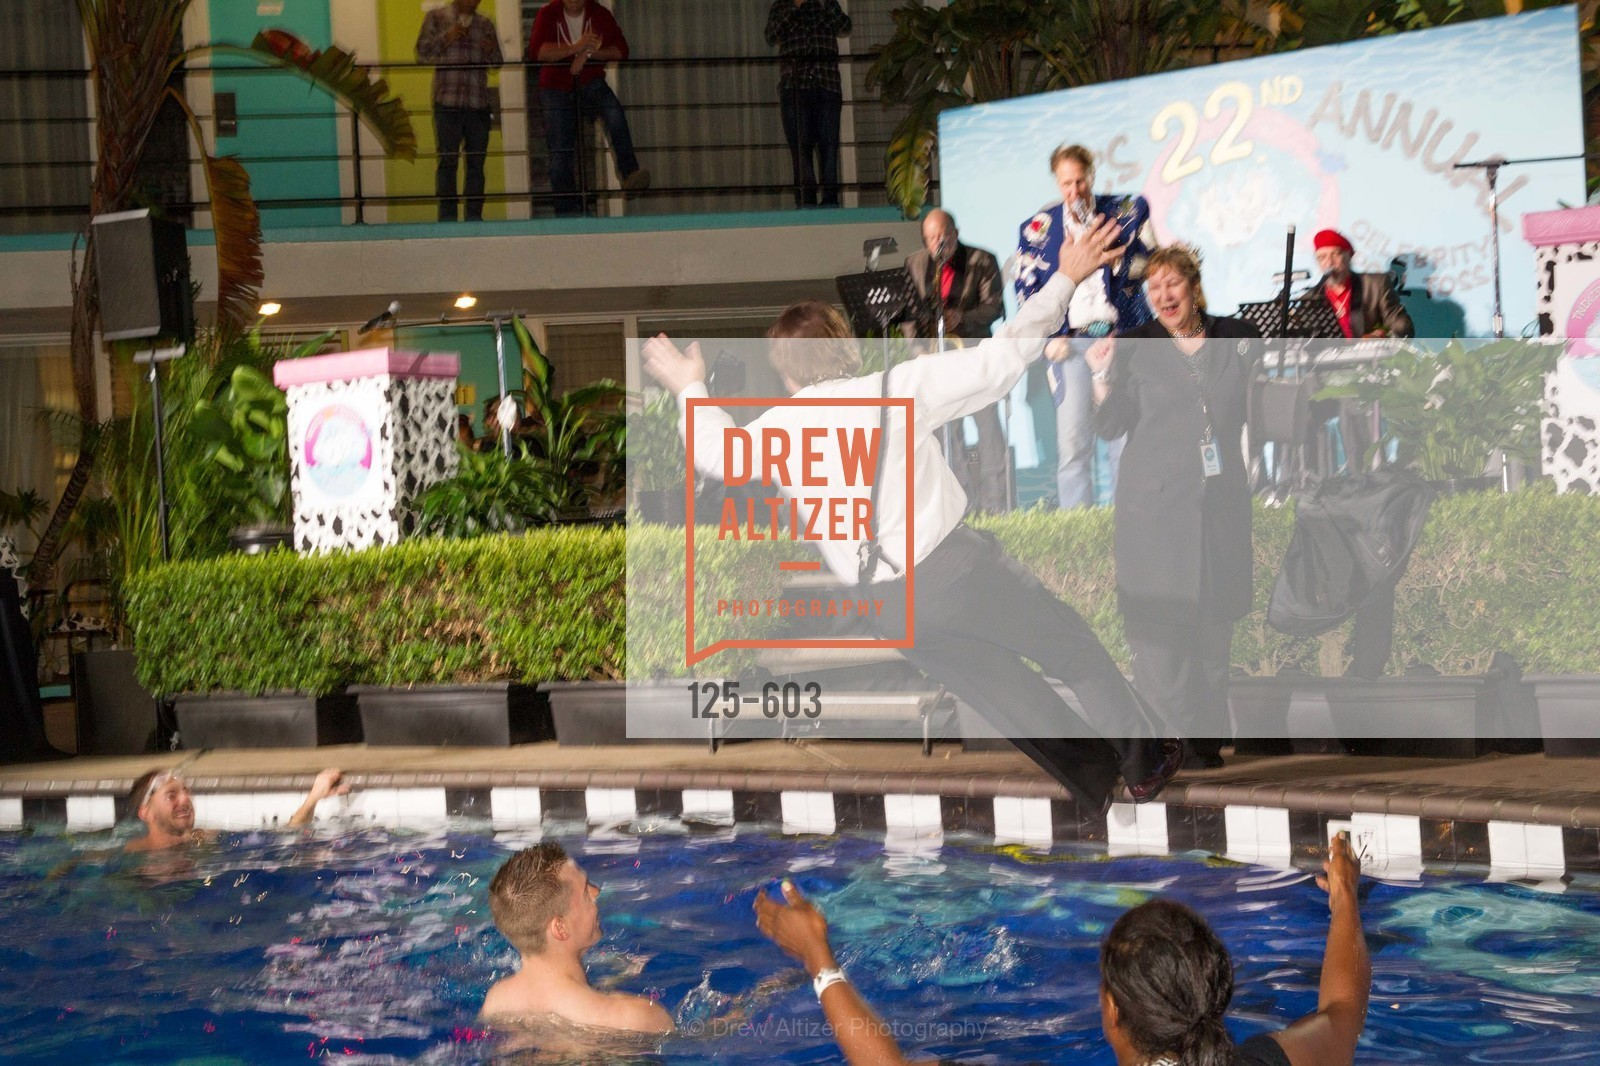 John Rosin, 22nd Annual TNDC CELEBRITY POOL TOSS, US, October 9th, 2014,Drew Altizer, Drew Altizer Photography, full-service agency, private events, San Francisco photographer, photographer california